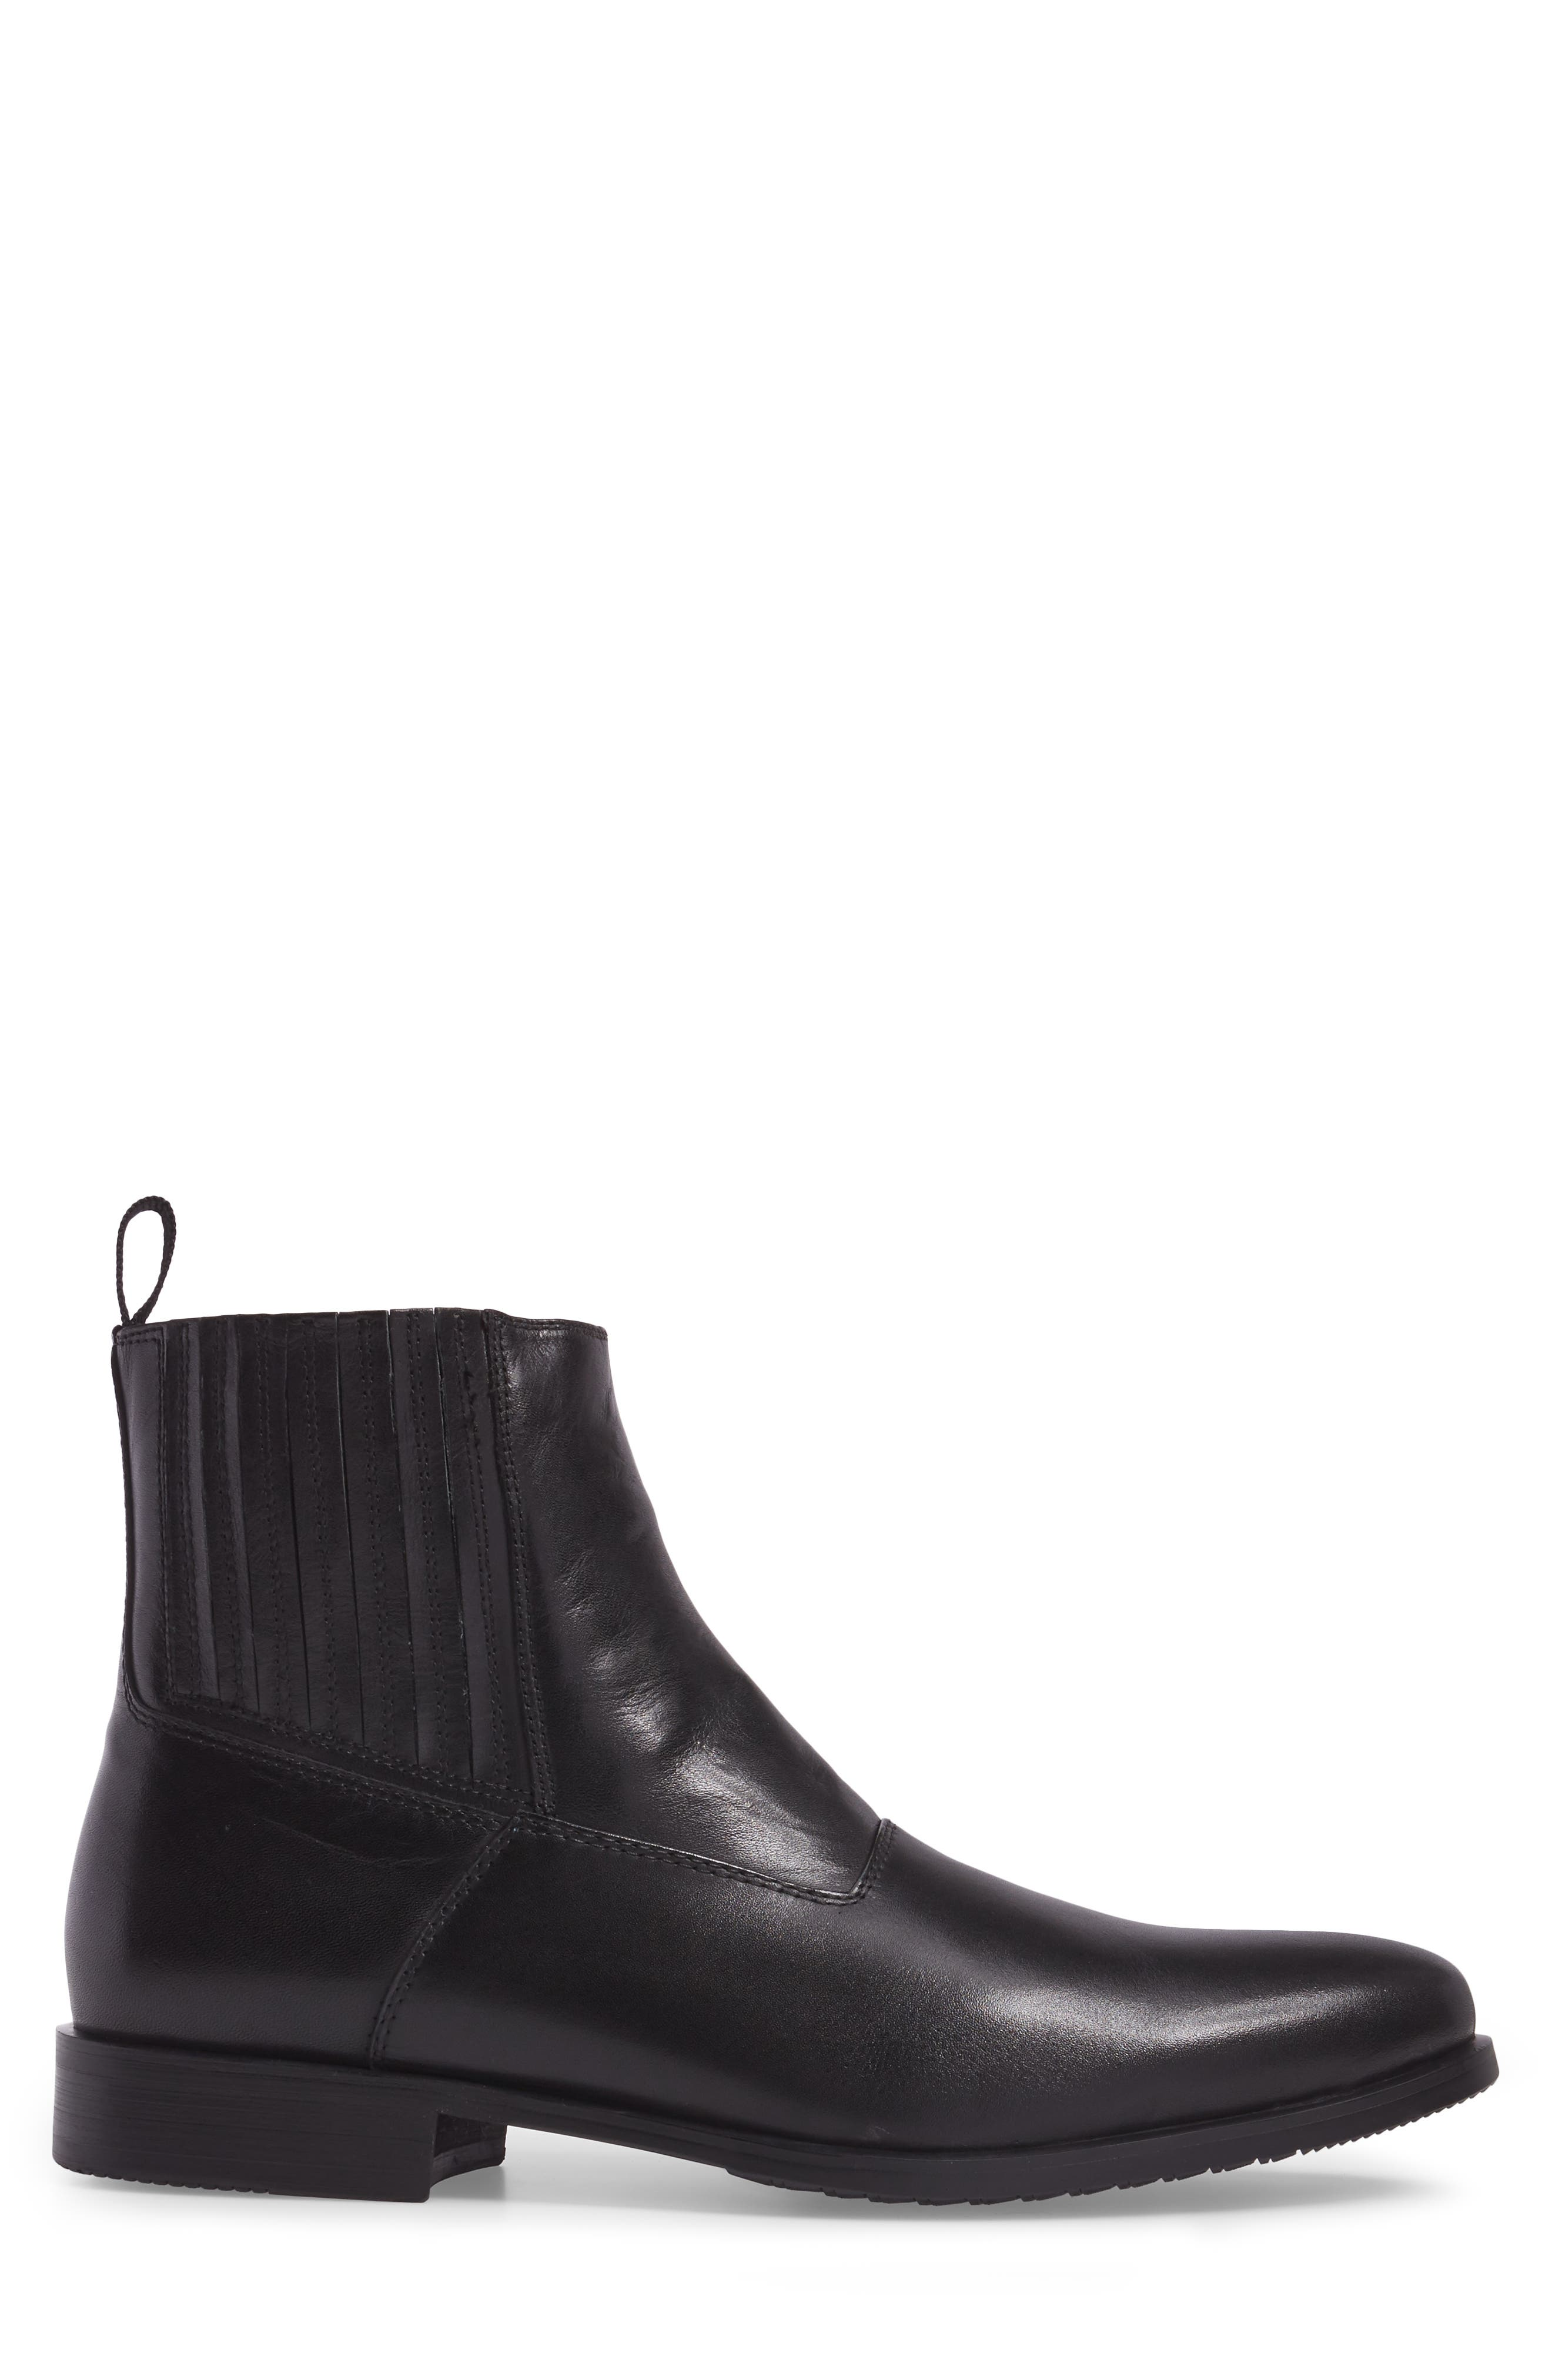 Guardi Zip Boot,                             Alternate thumbnail 3, color,                             Black Leather